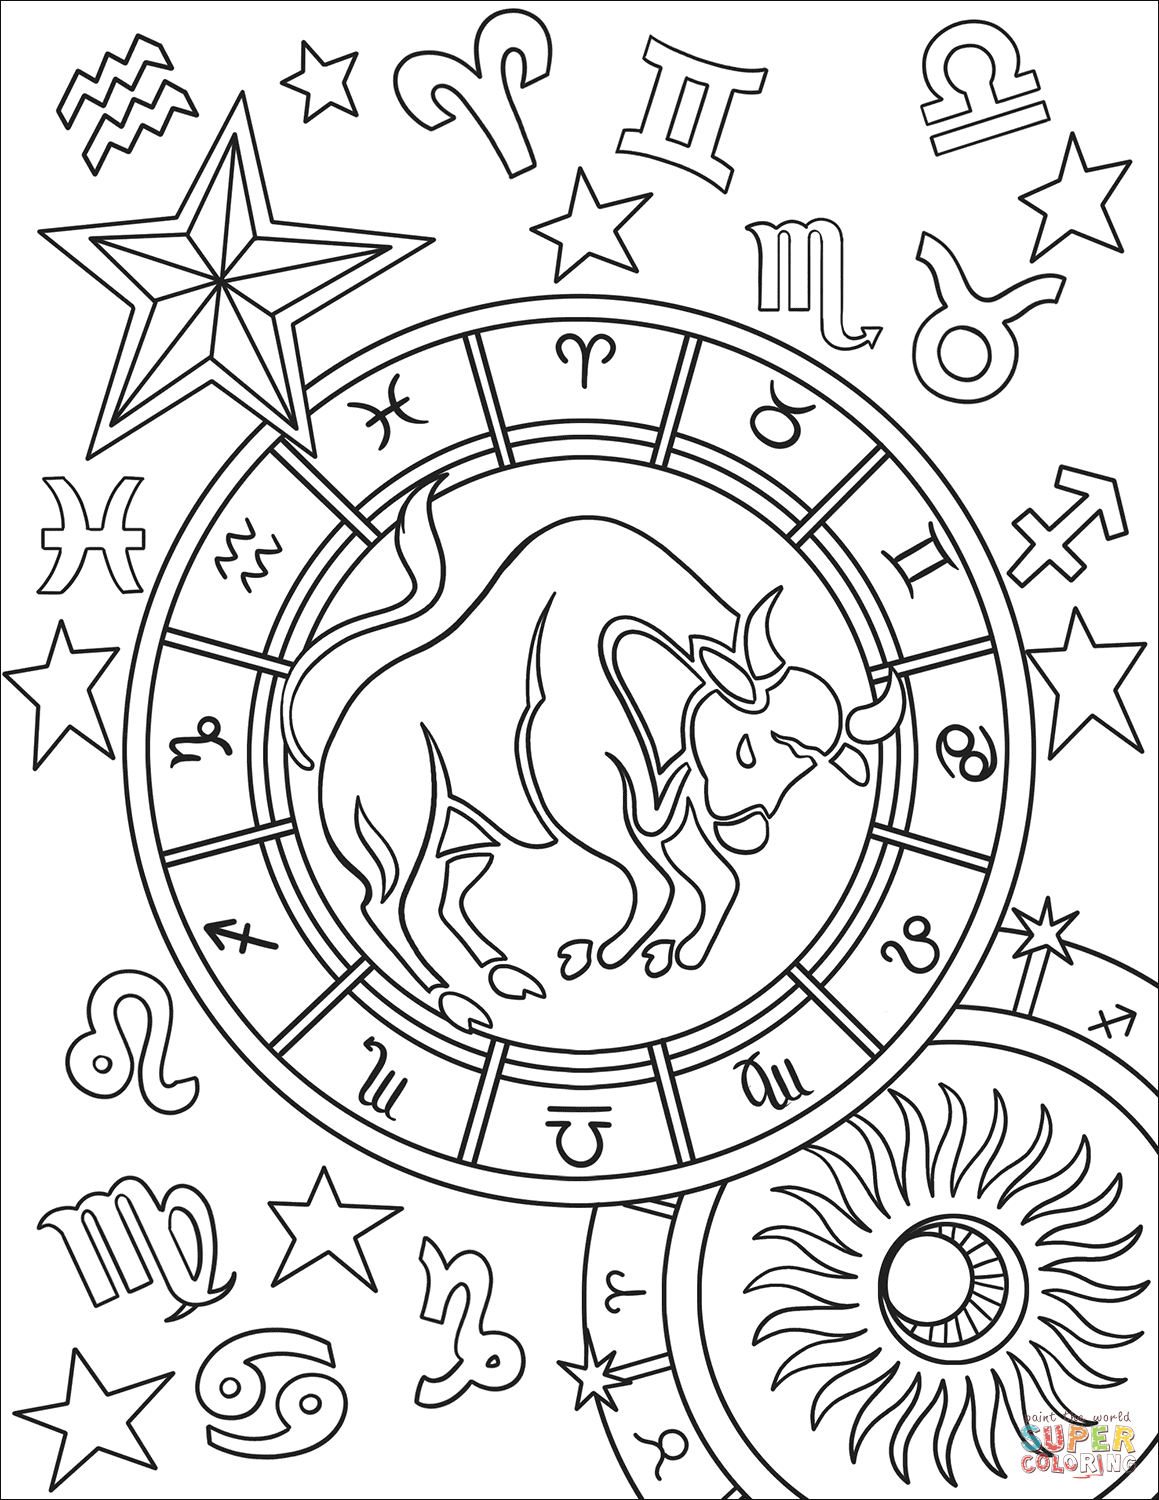 taurus zodiac coloring pages zodiac sign taurus coloring pages getcoloringpagesorg zodiac coloring taurus pages